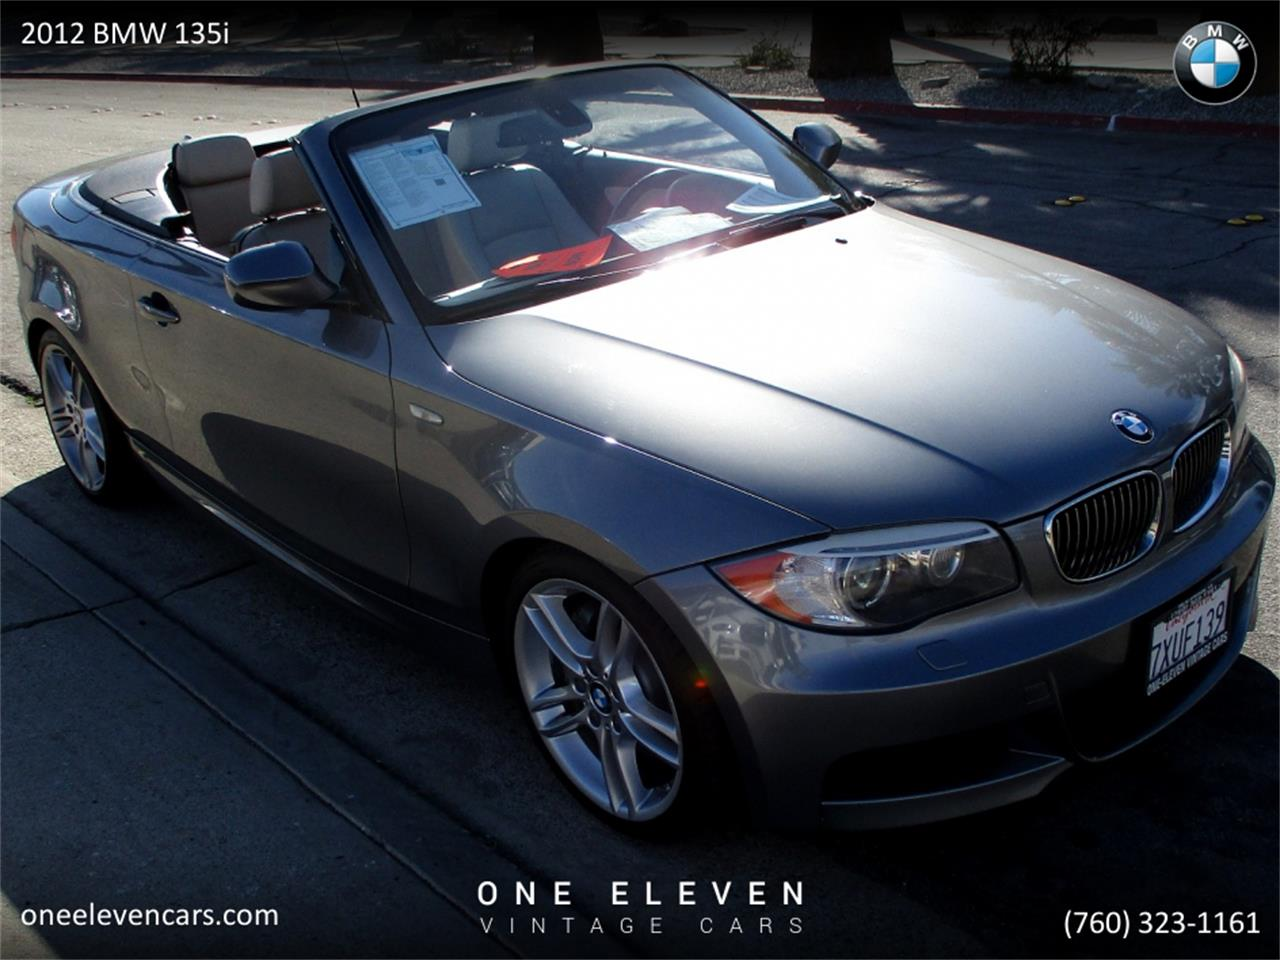 for sale 2012 bmw 1 series in palm springs, california cars - palm springs, ca at geebo